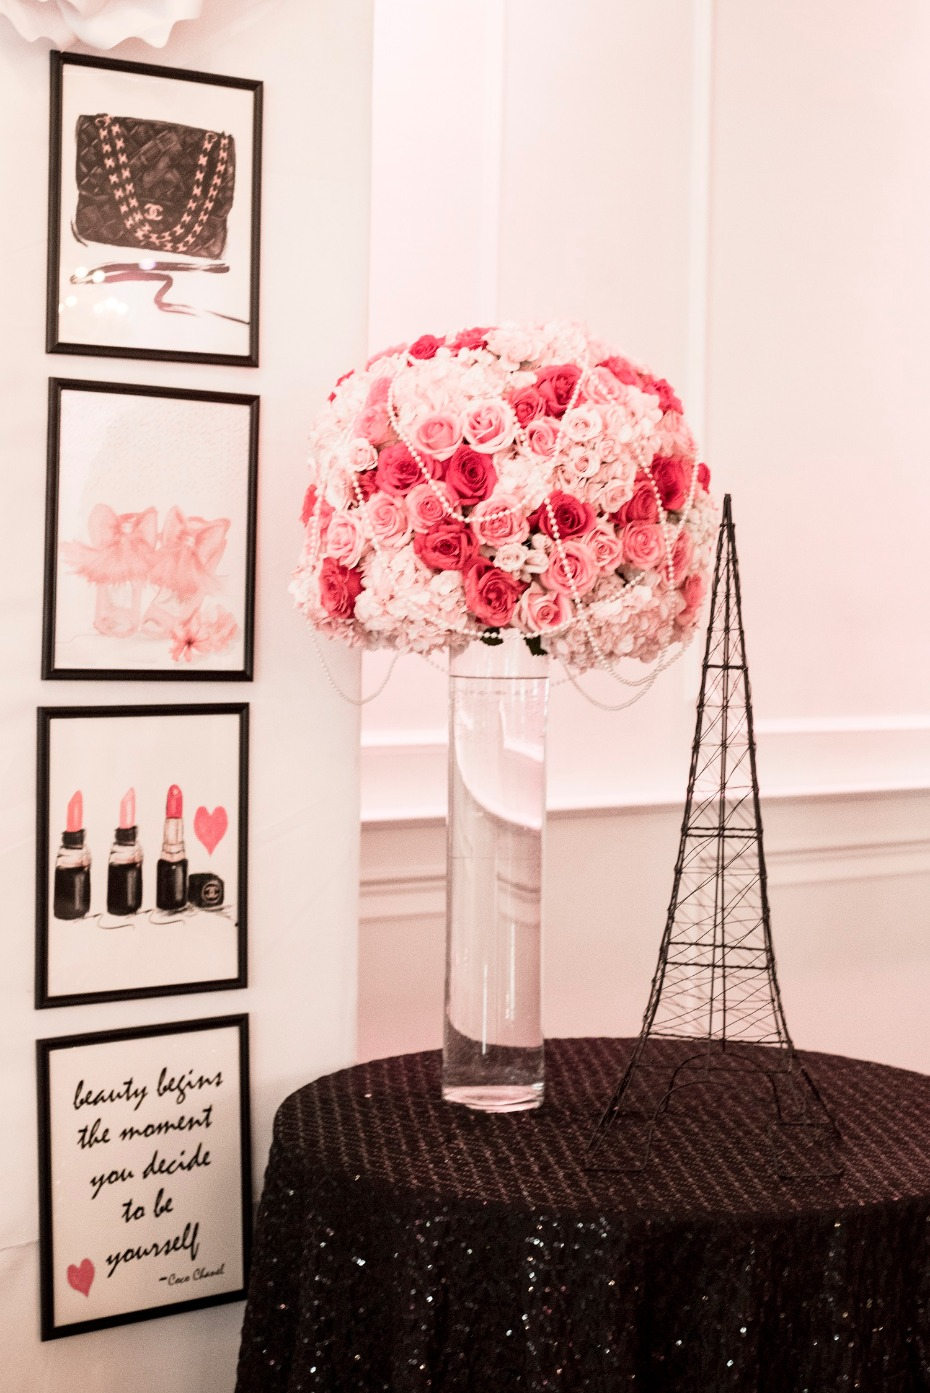 Hot pink details at this Chanel Paris bridal shower